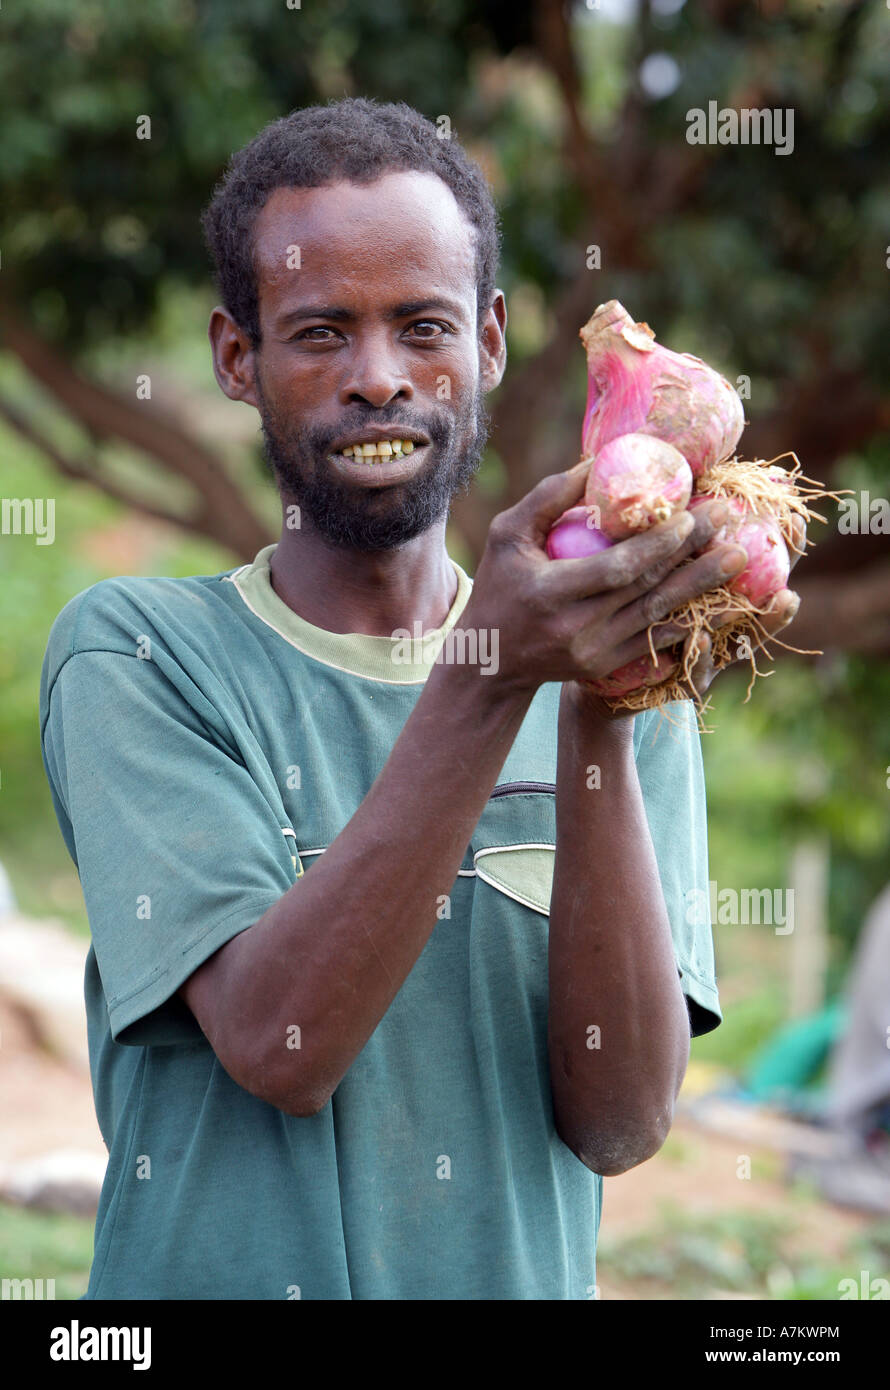 Ethiopia - Farmer shows proudly his harvested onions - Stock Image